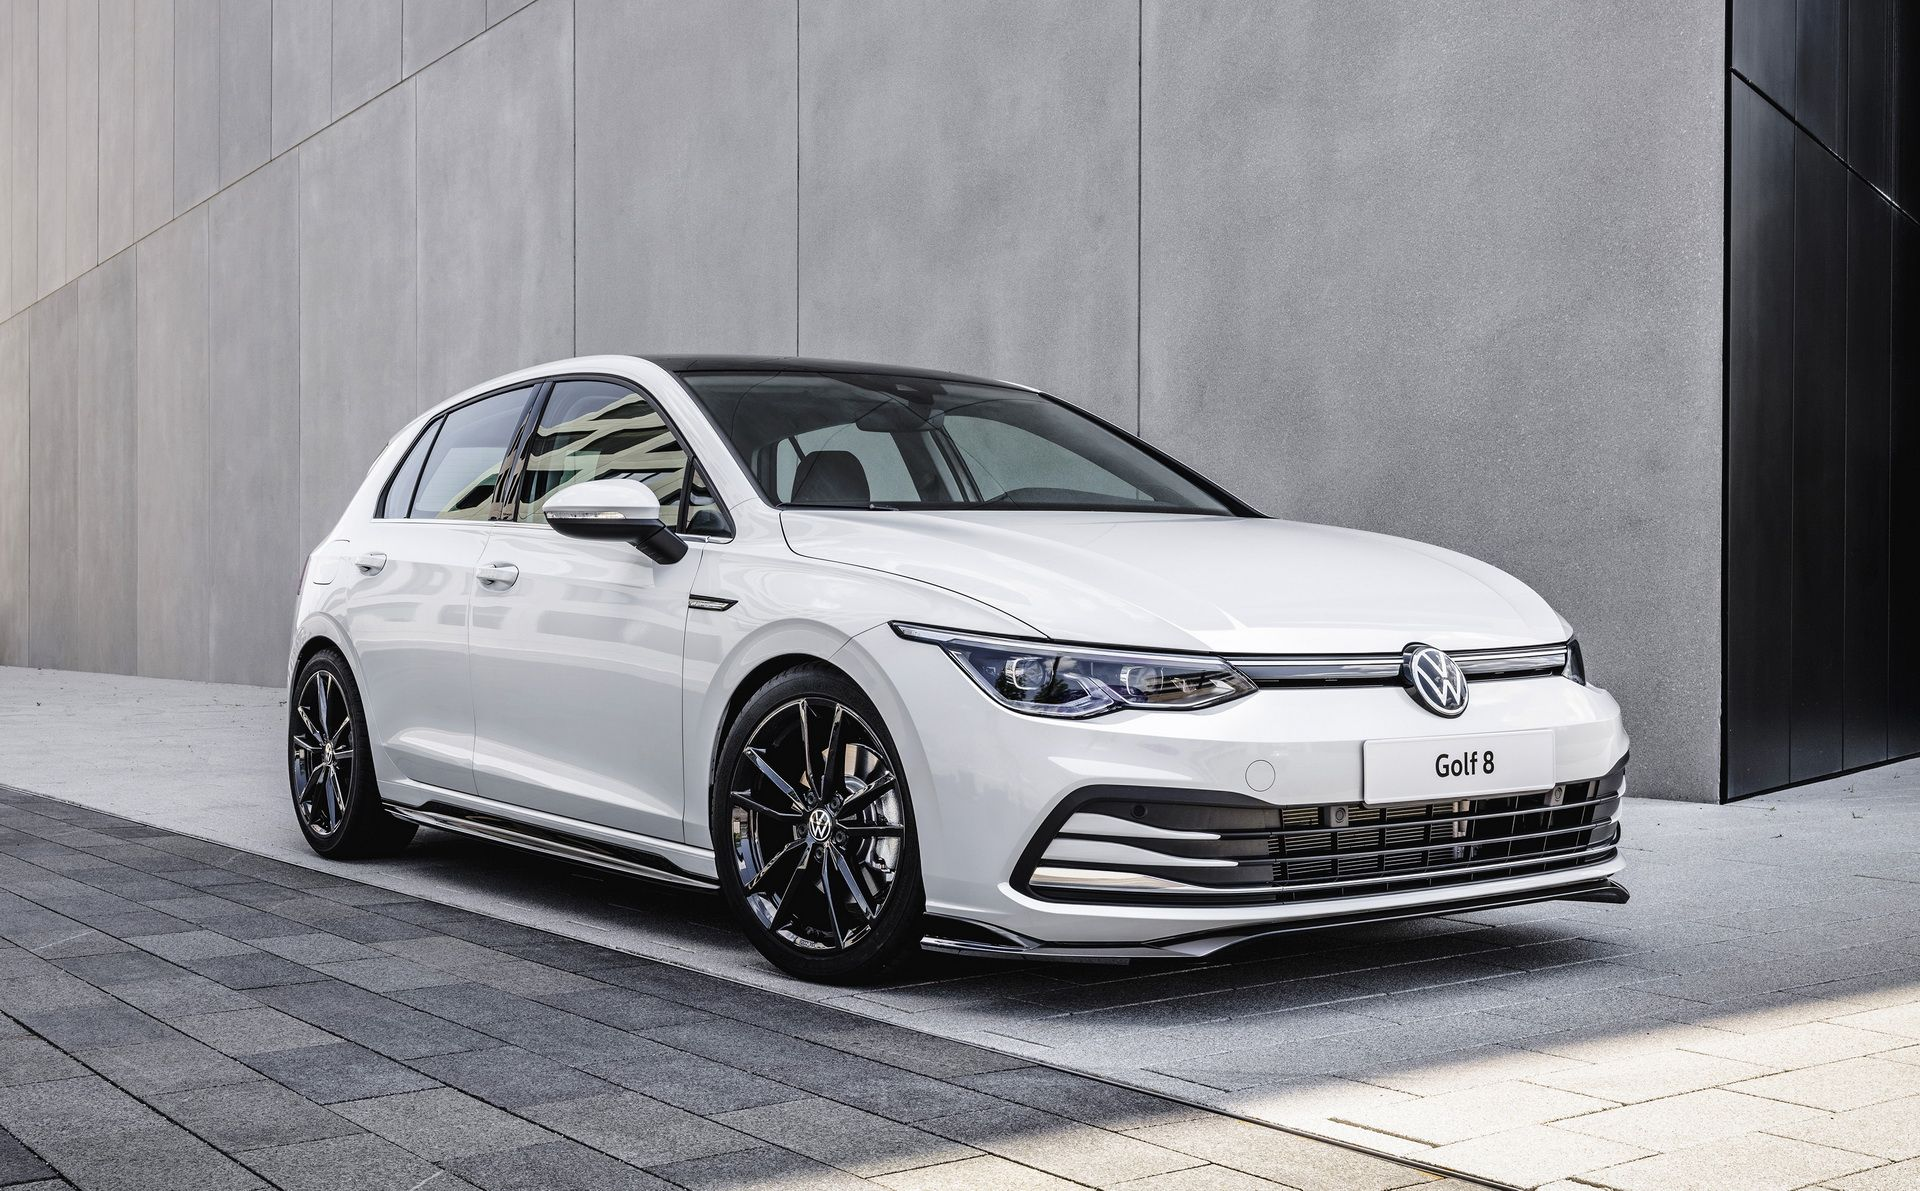 Oettinger Releases A Number Of Parts For The New Vw Golf Mk8 Carscoops In 2020 Volkswagen Golf Volkswagen Volkswagen Golf R